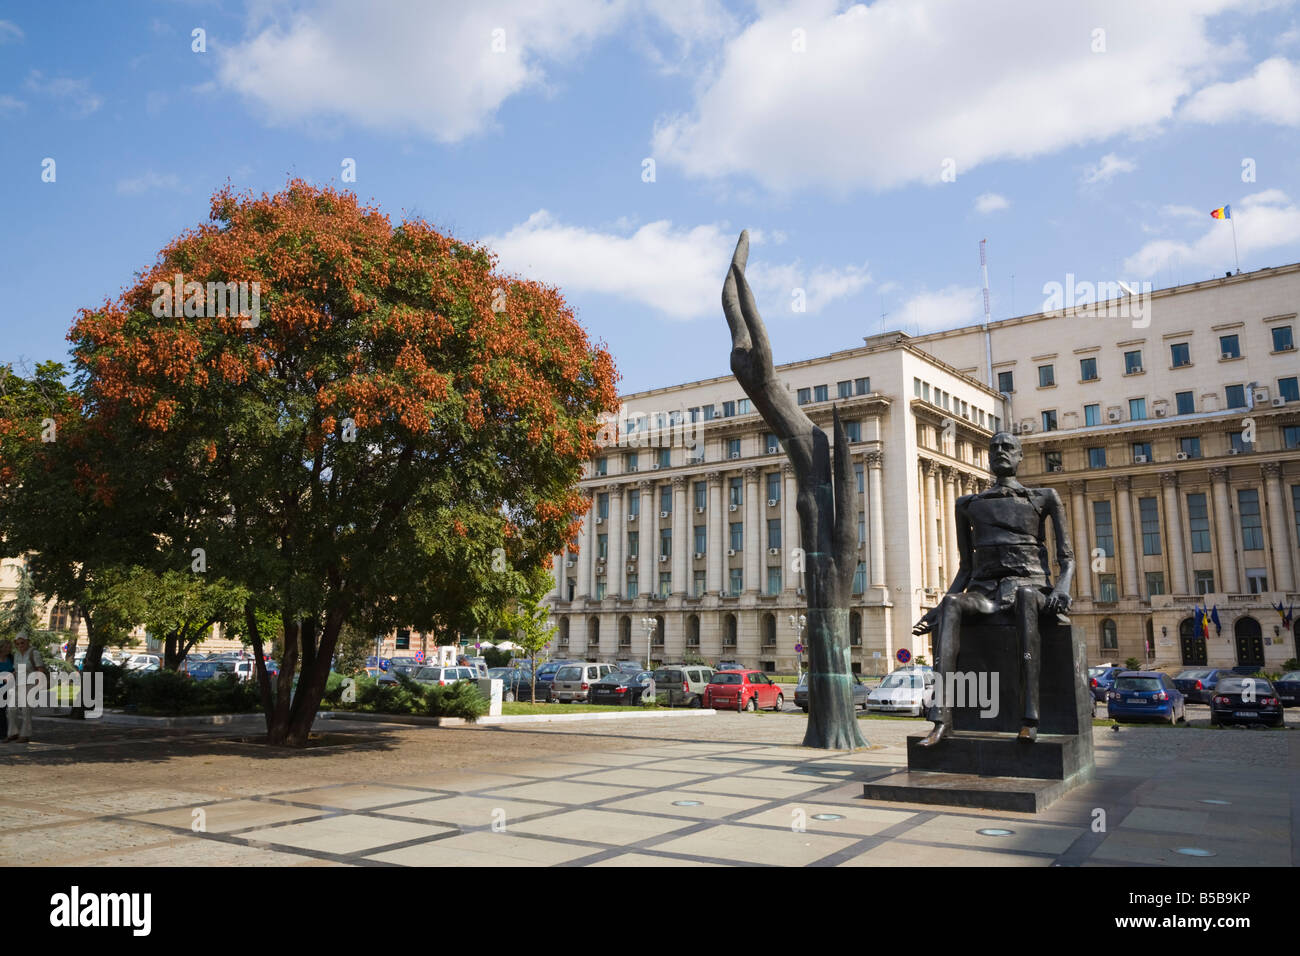 Hand and Broken Man bronze statue of 'Iuliu Maniu' in Revolution Square Piata Revolutiei in city centre. - Stock Image